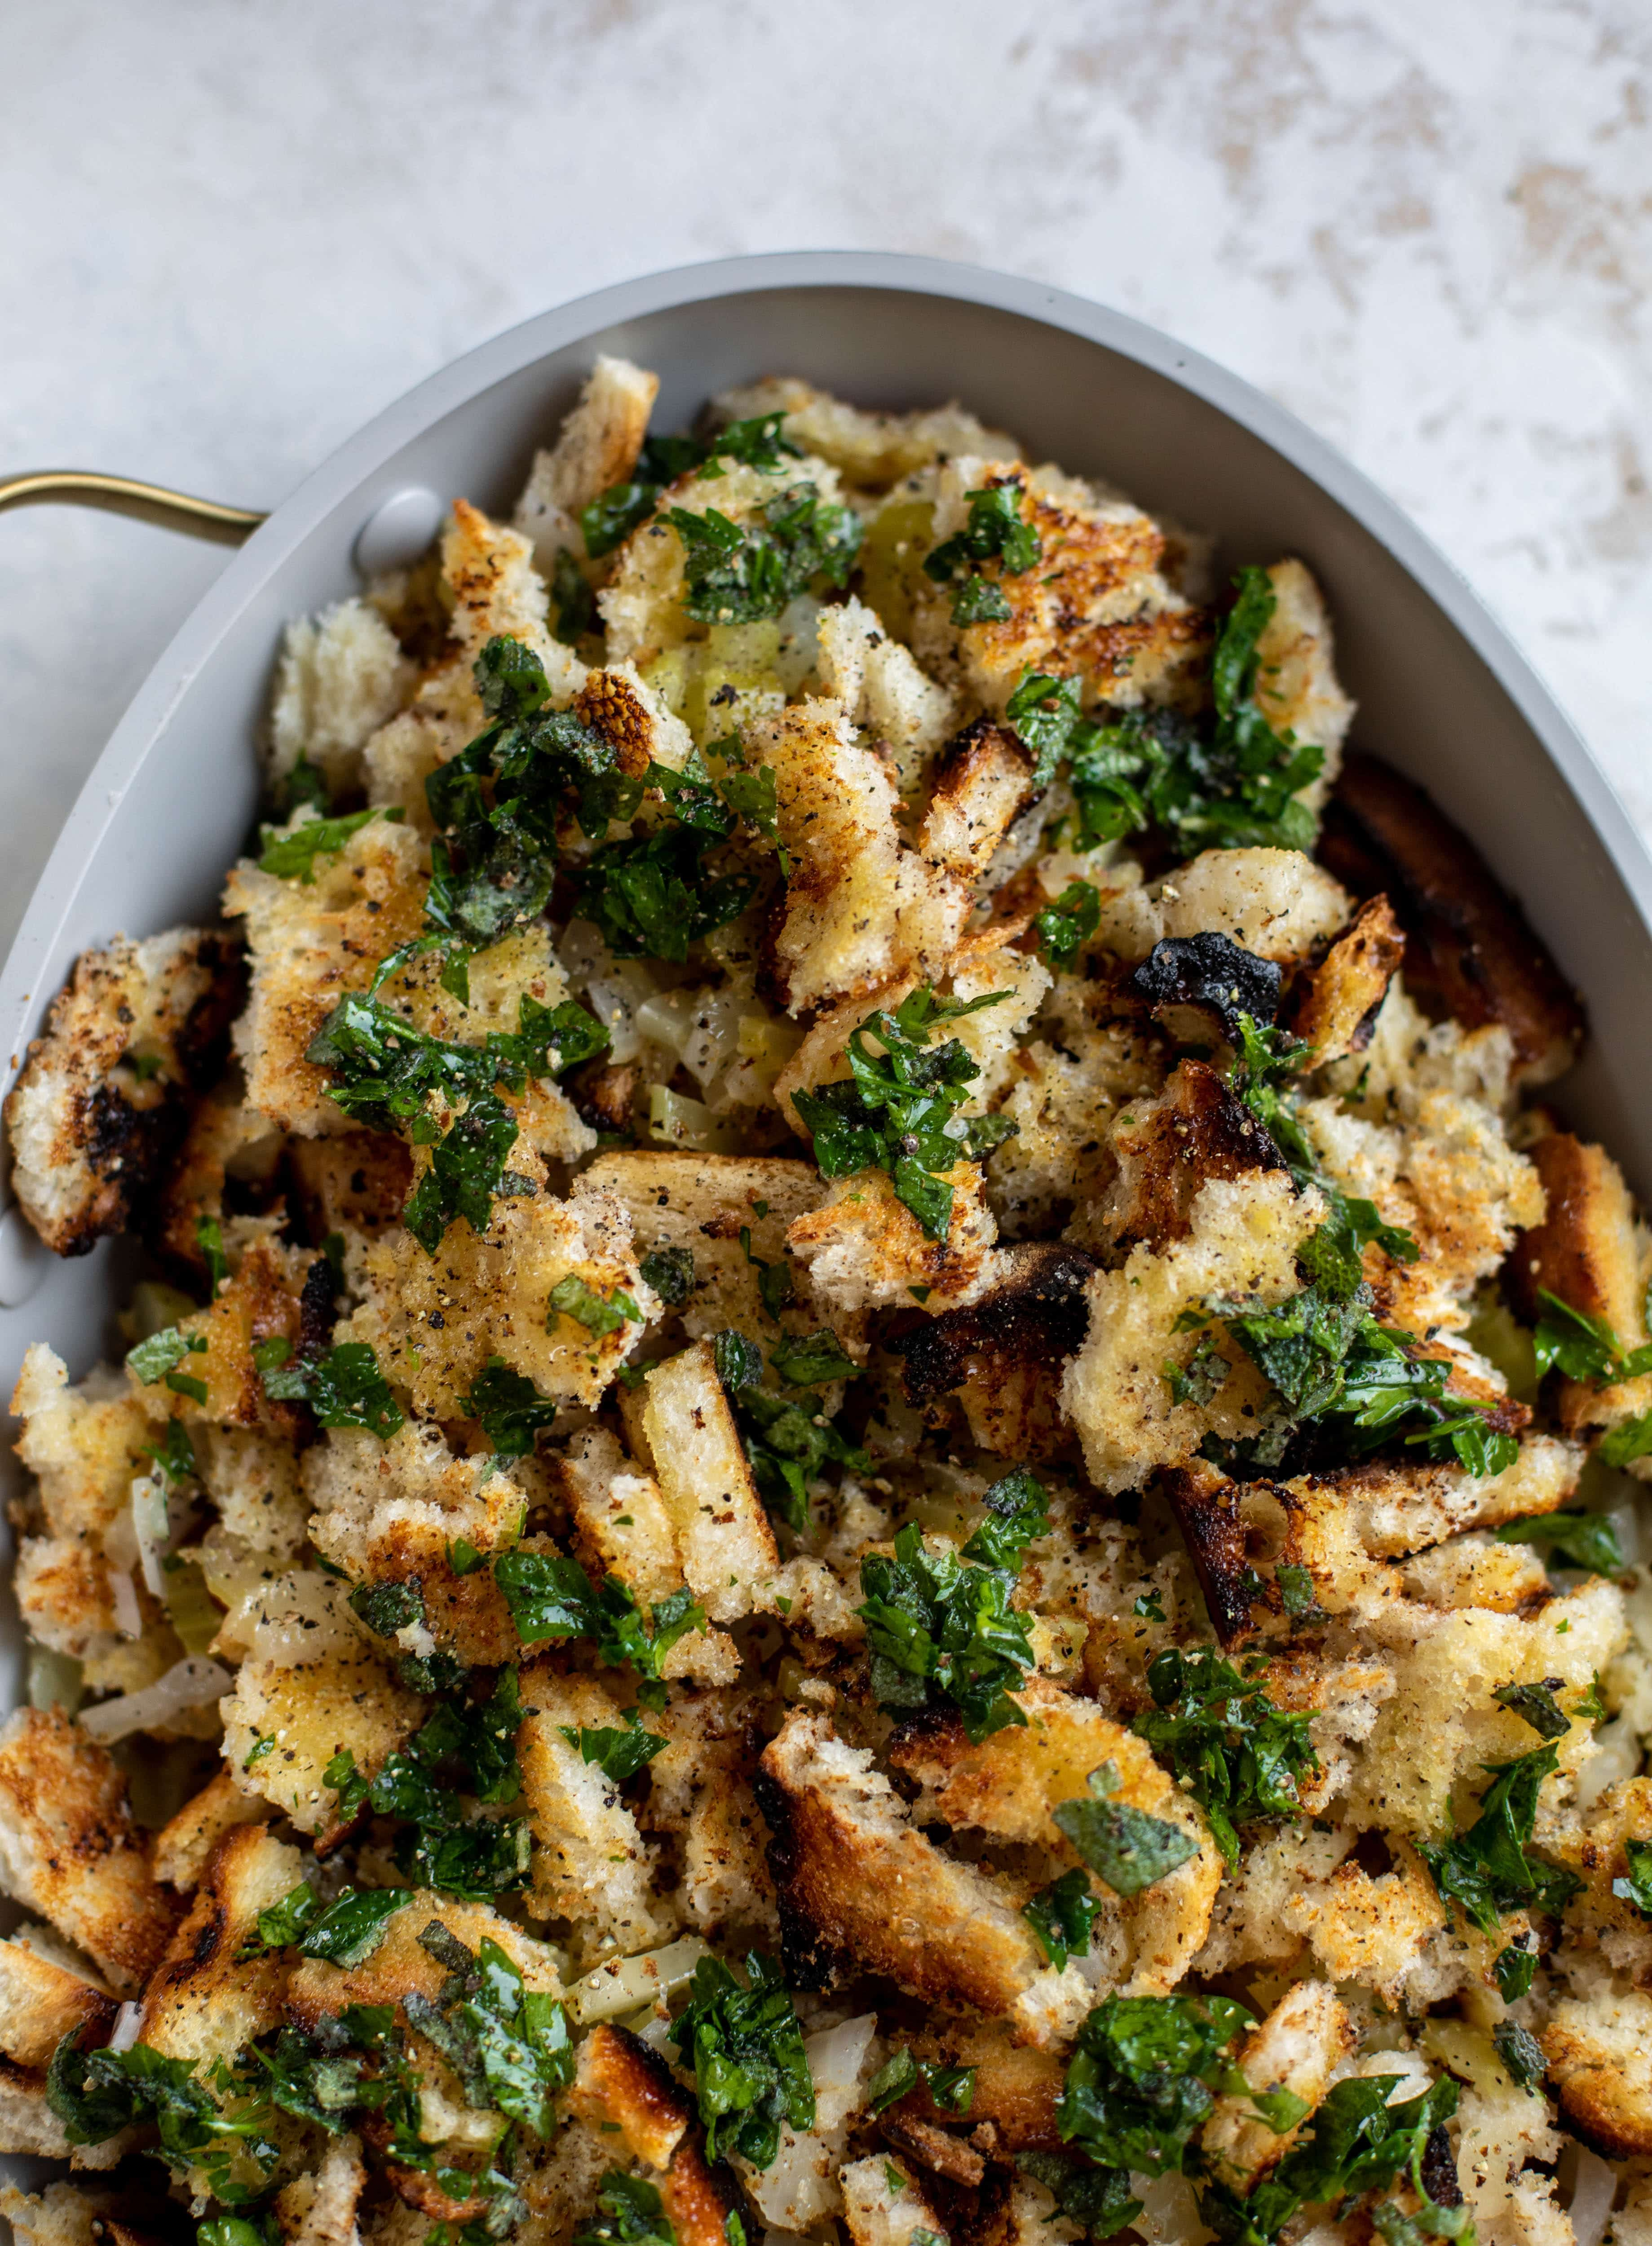 This grilled bread stuffing is a modern twist on the classic - deliciously traditional and flavored to perfection, made with grilled bread!